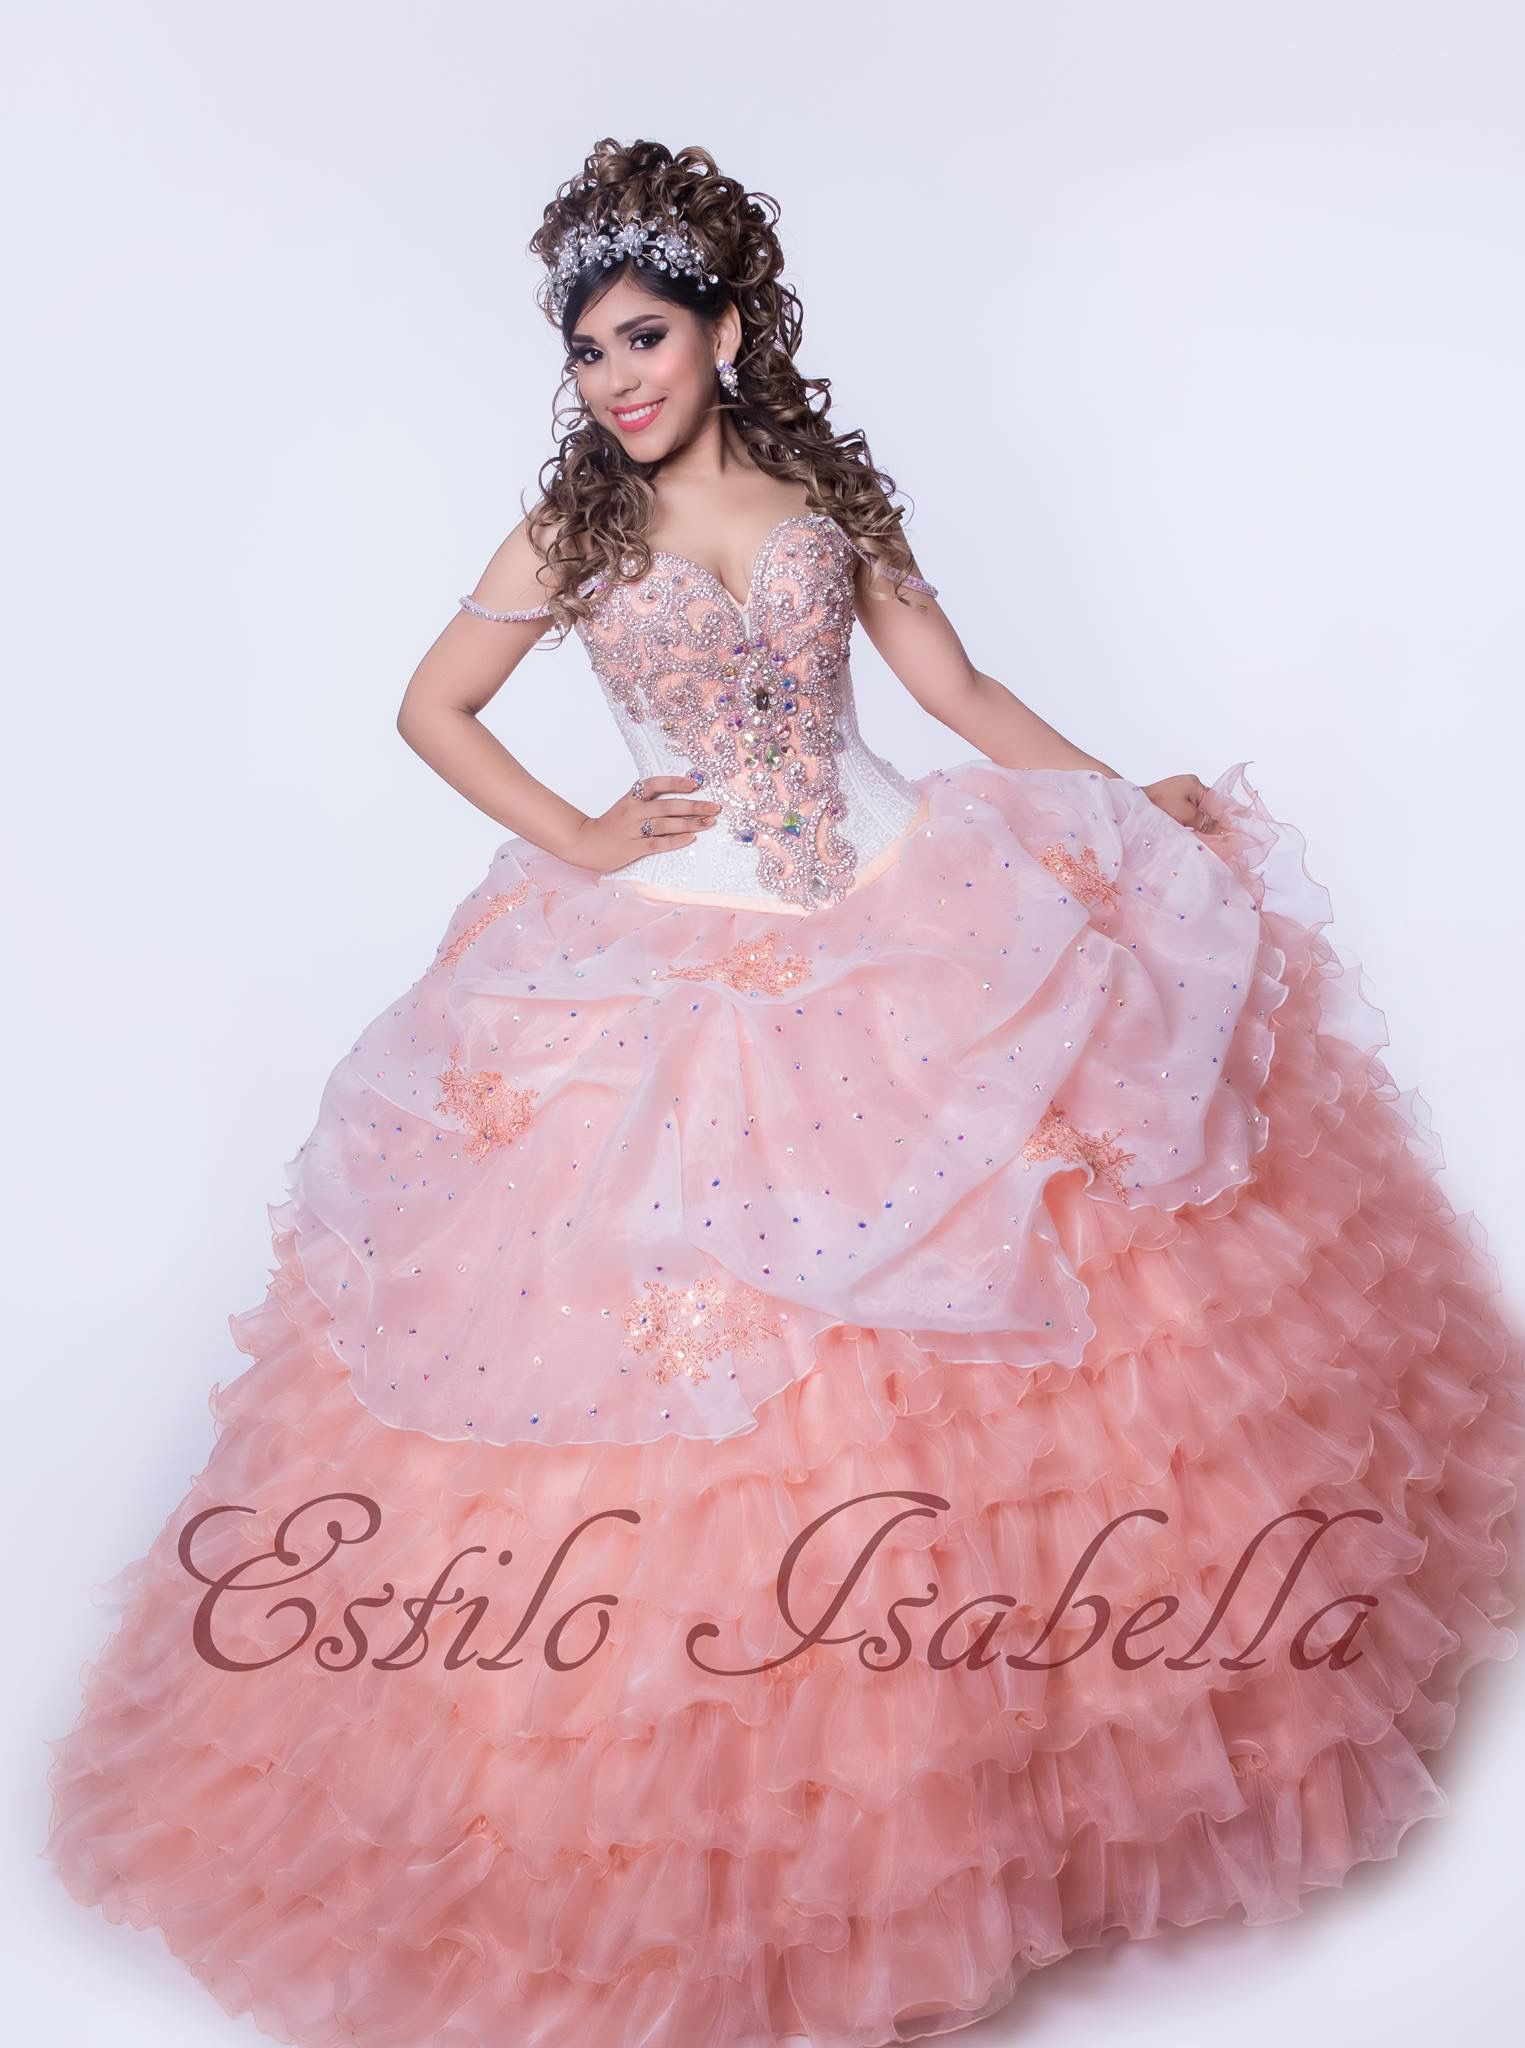 Quince dress #estiloisabella more info 979-635-0477 | Estilo ...